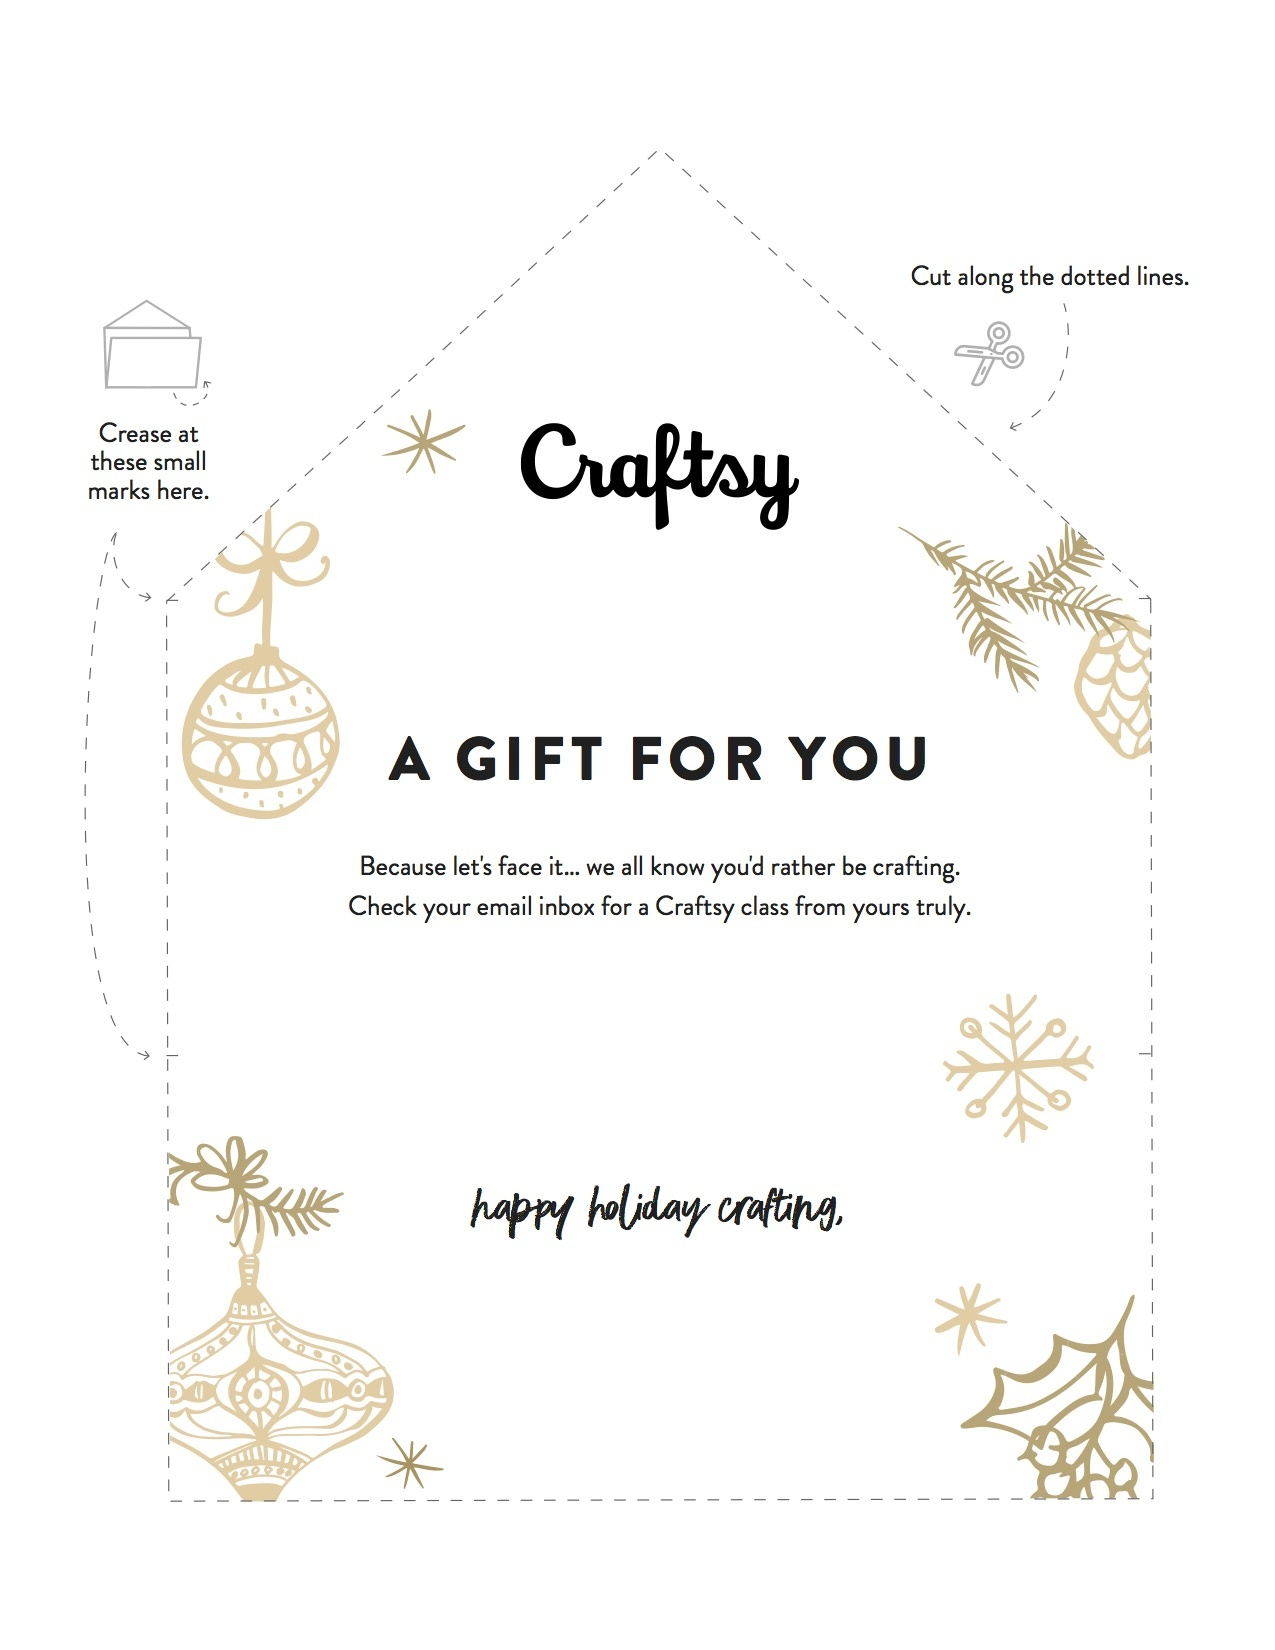 A Free Printable Gift Certificate For Craftsy Classes - Free Printable Xmas Gift Certificates